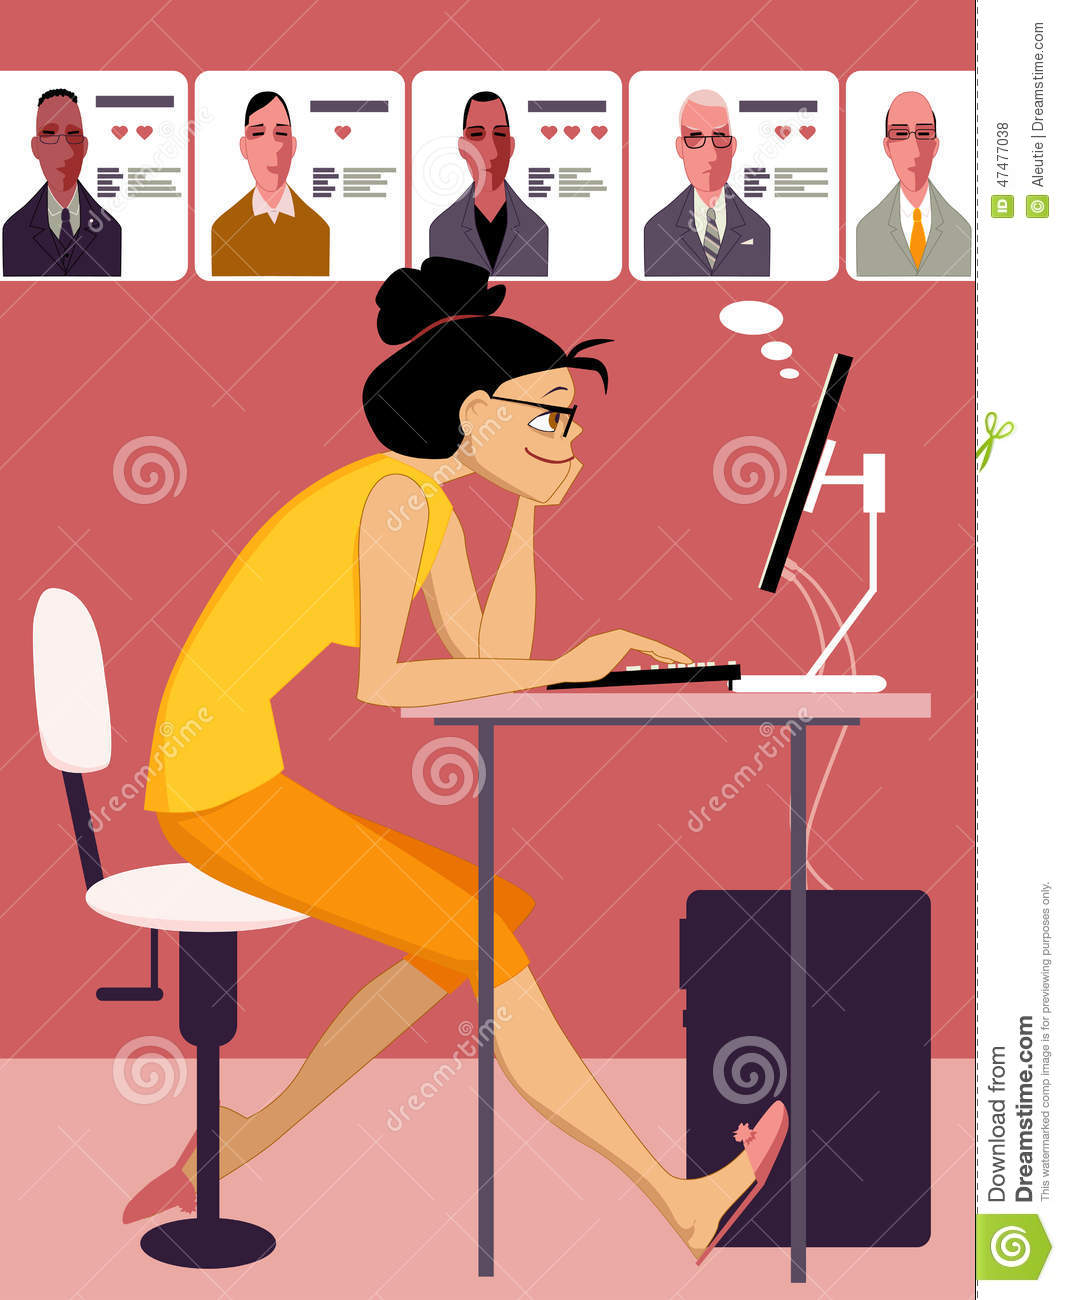 Internet Dating Site Stock Vector - Image: 47477038